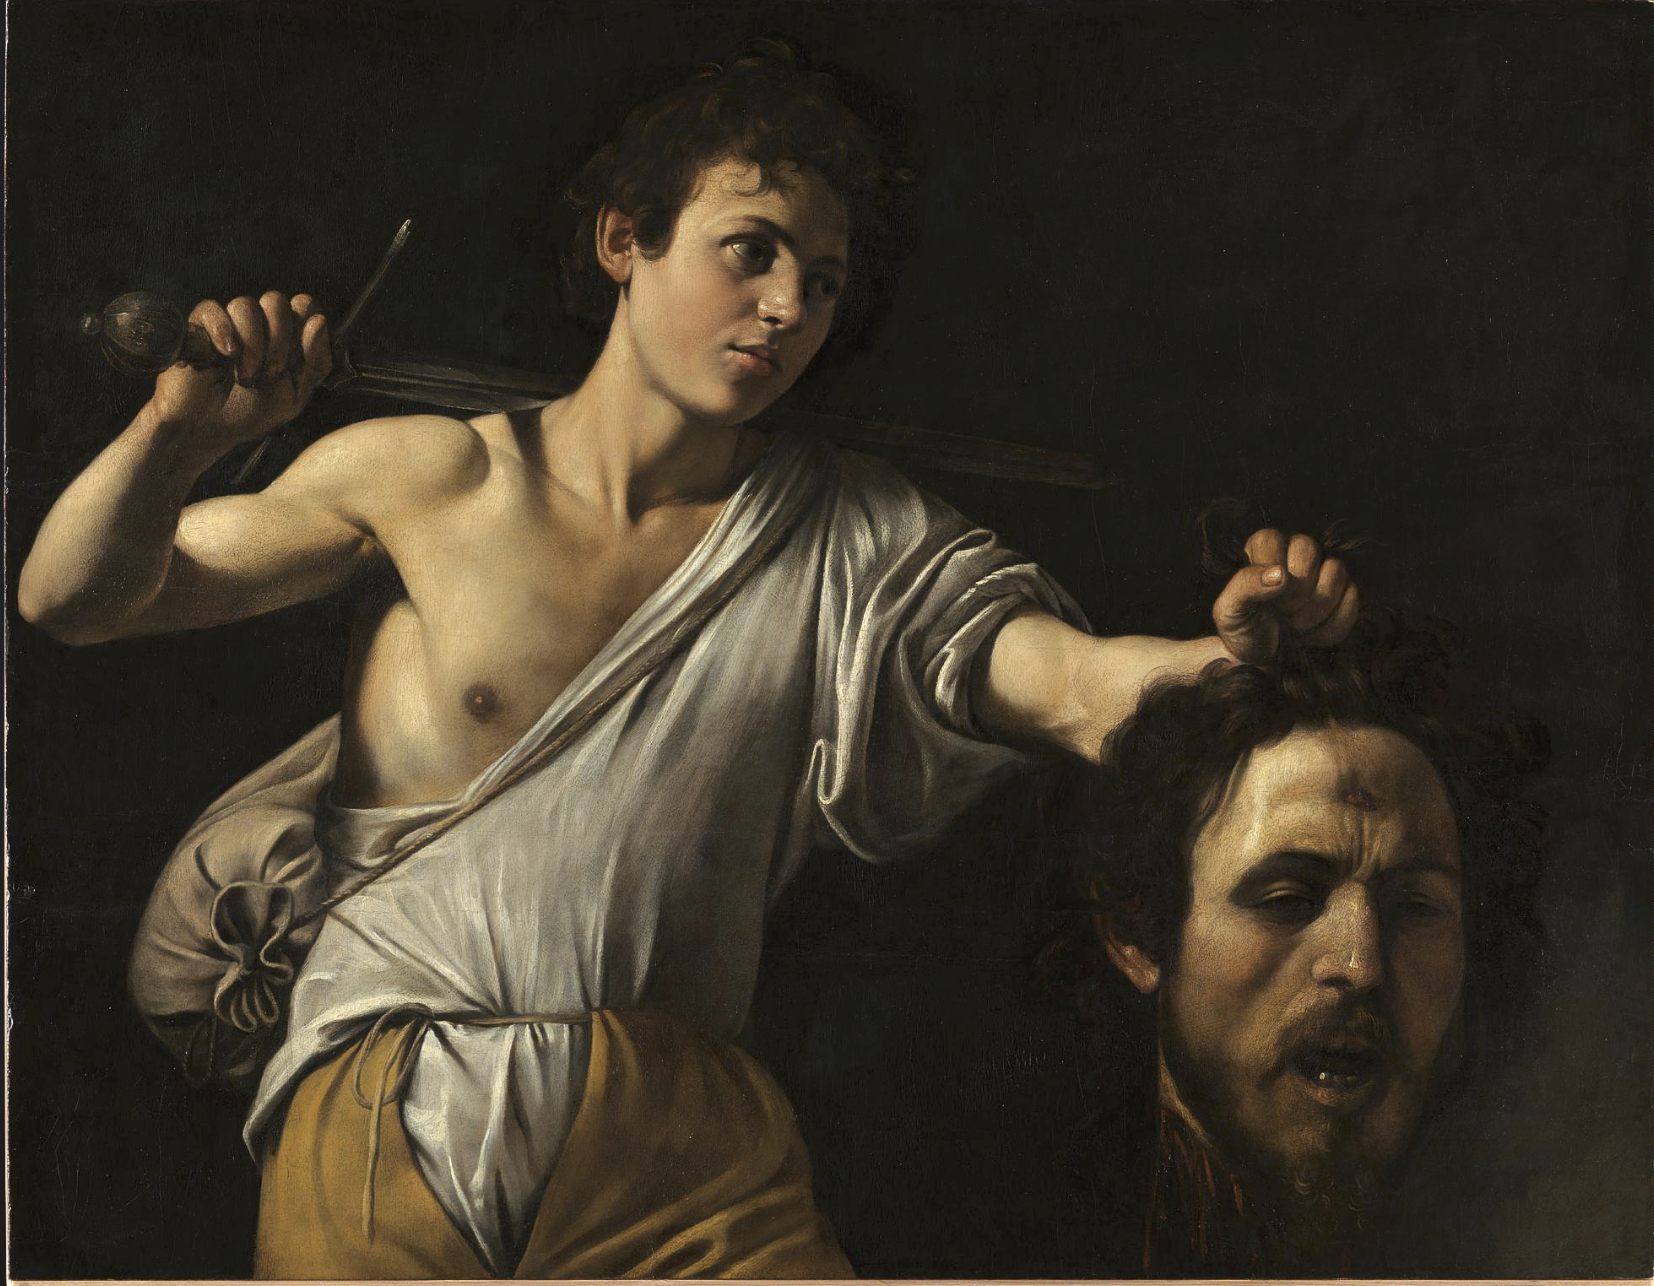 Caravaggio,   David with the Head of Goliath  , c. 1607 (Um, what's with his shirt, pants and the opening of his shoulder bag?)